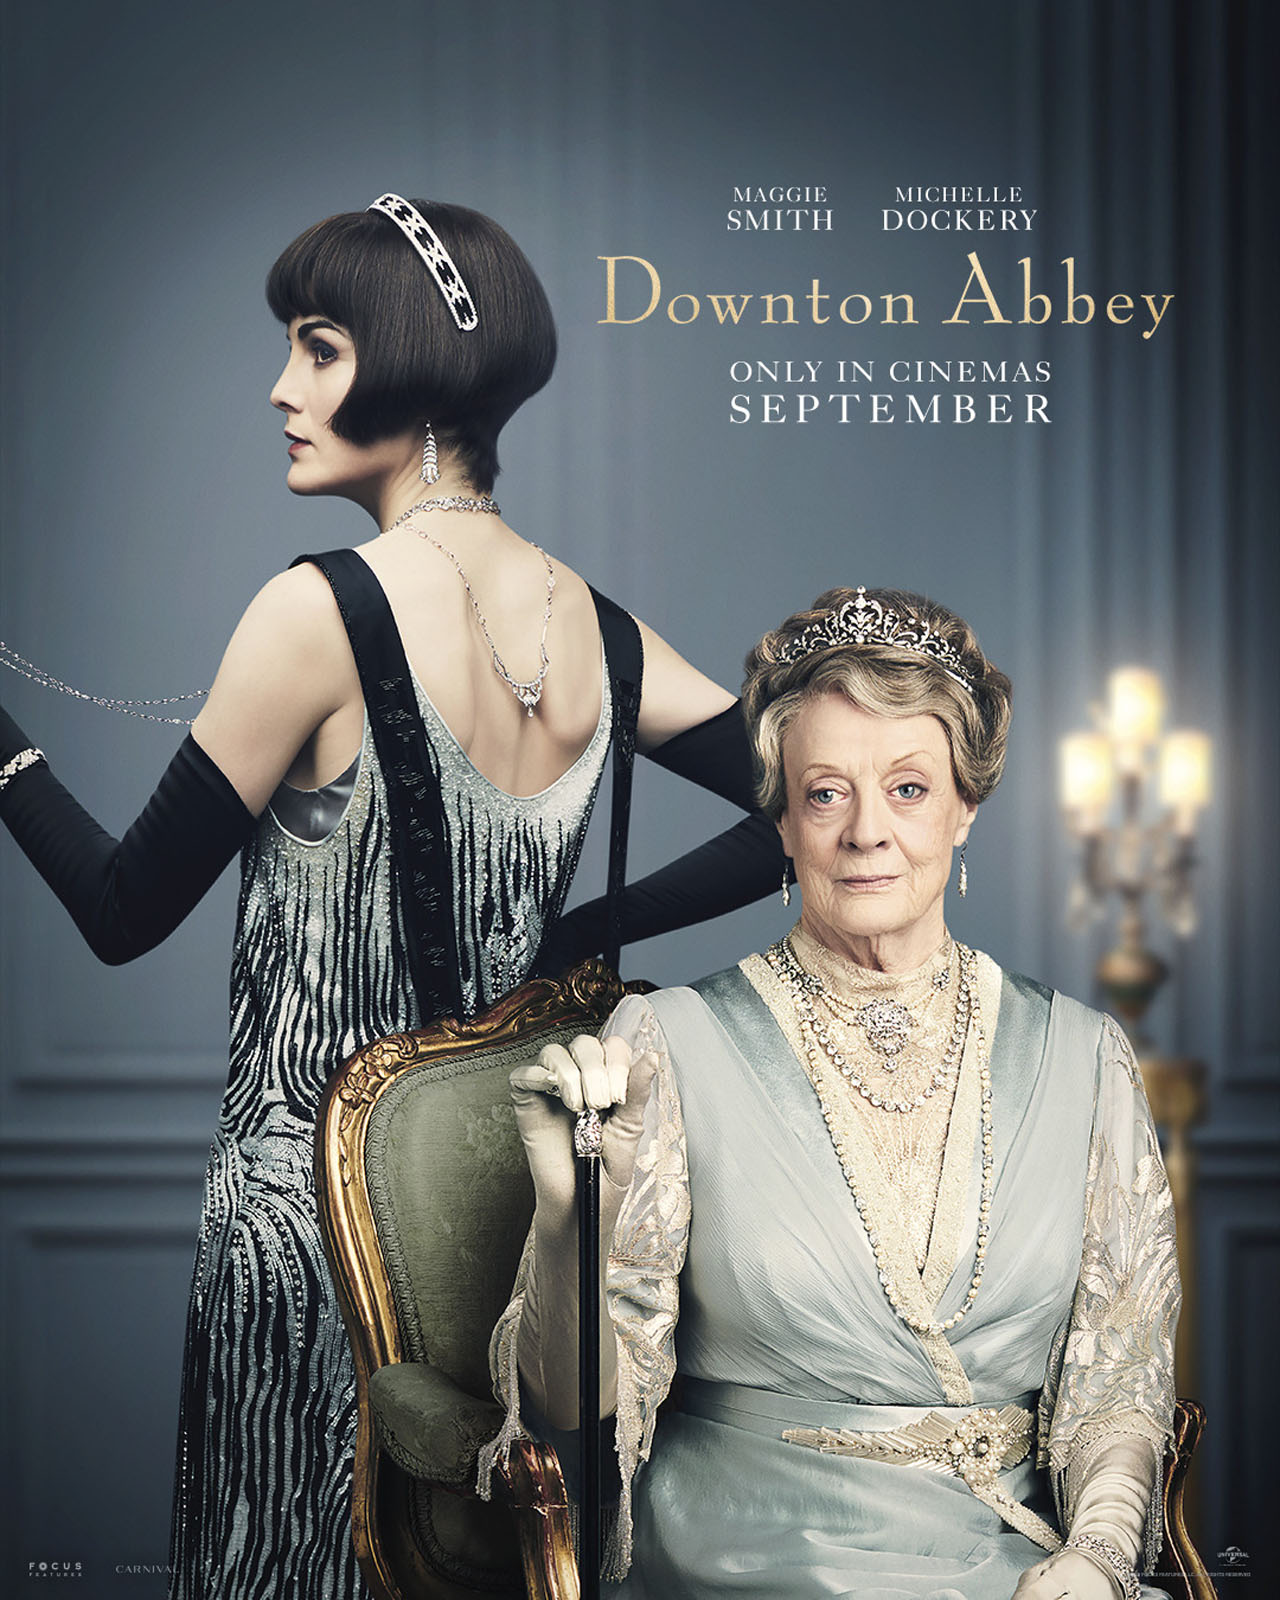 Downton Abbey The Movie Character Posters Lady Mary Crawley and Lady Violet Crawley